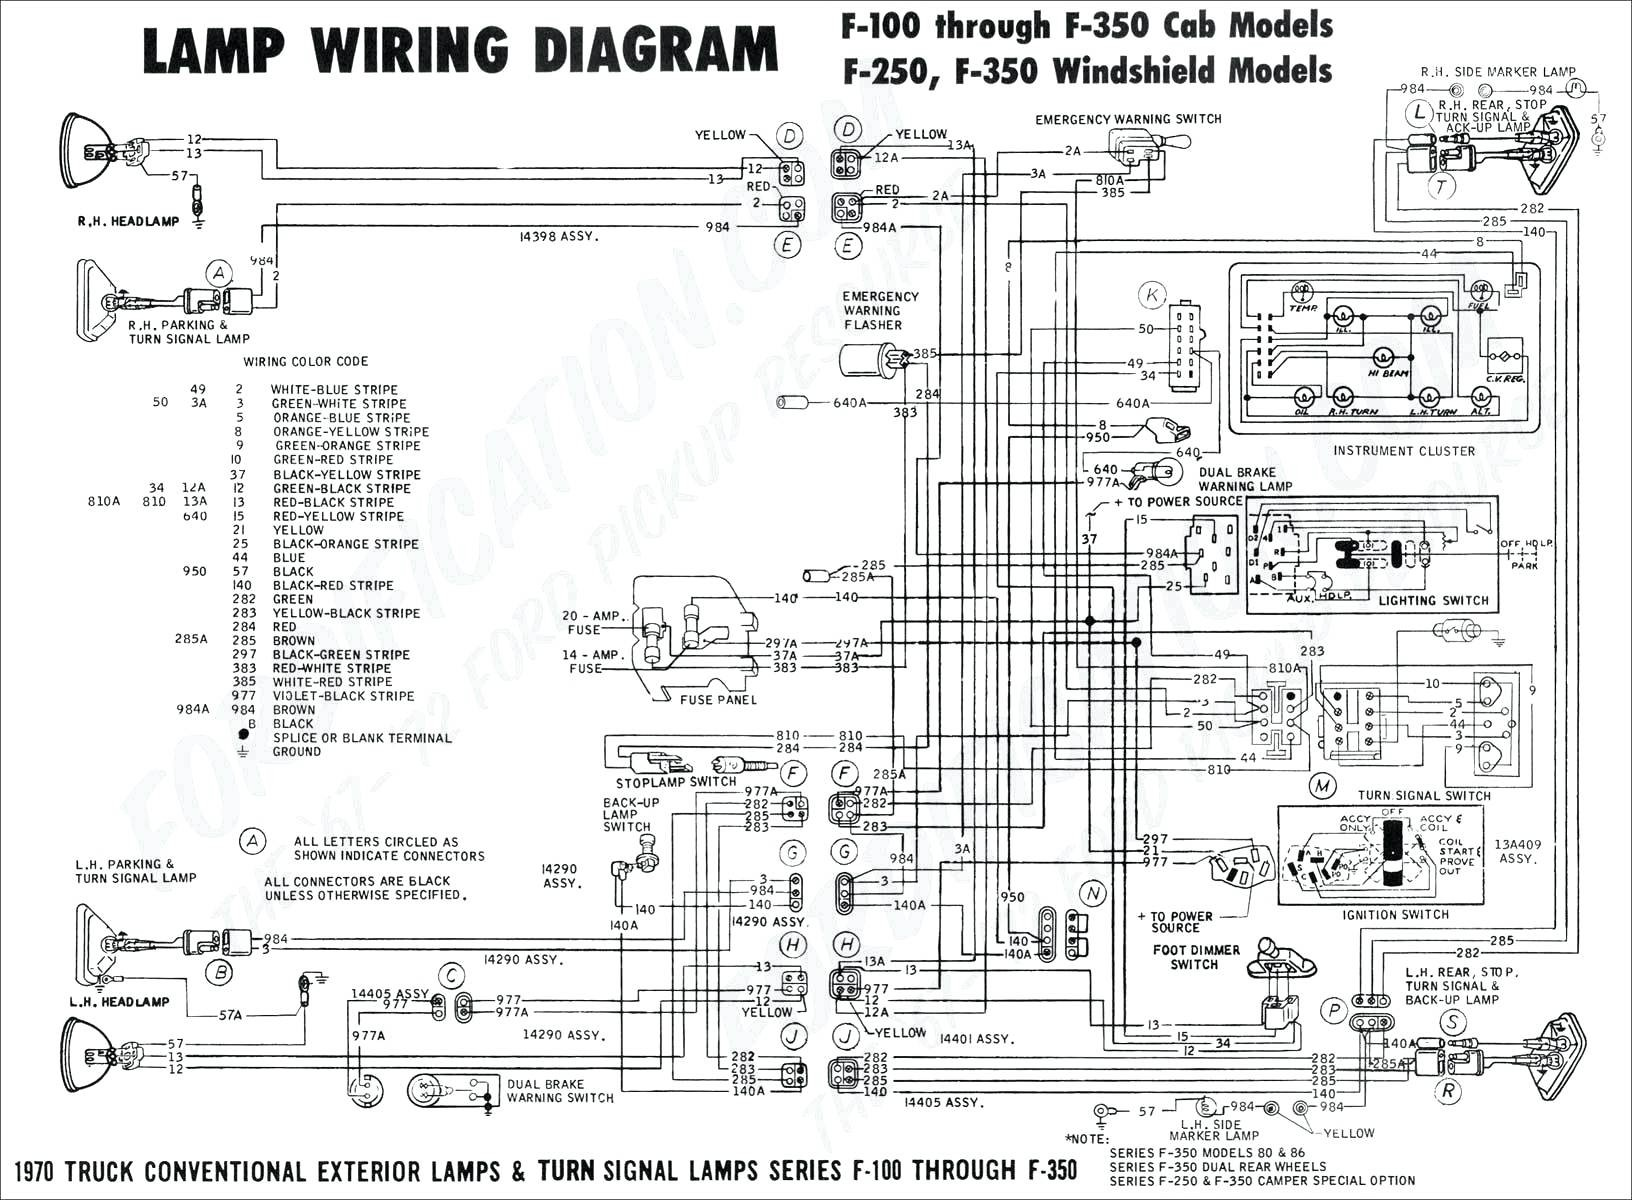 Razor E100 Wiring Diagram Em 5350] Razor Electric Scooter Wiring Diagram as Well Razor